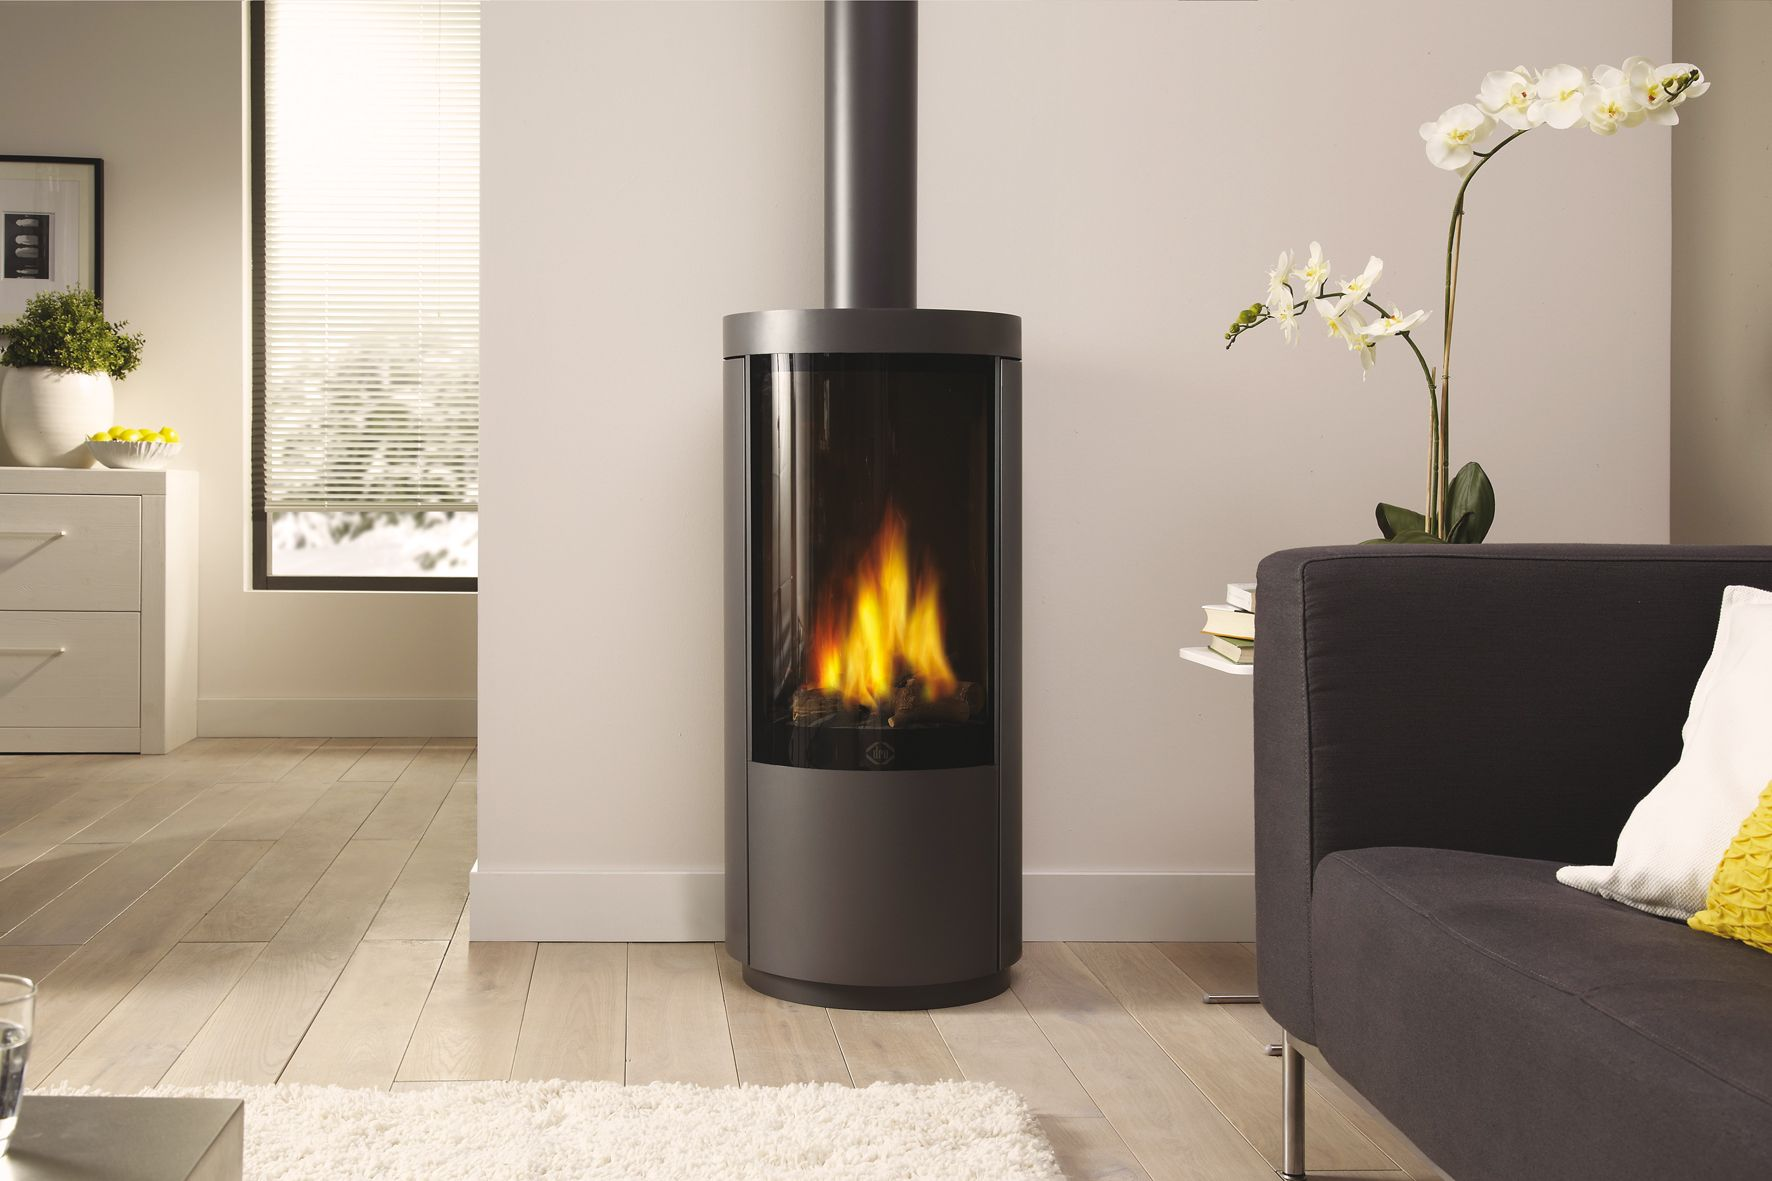 dru  the circo  is a freestanding dru gas stove with a unique  - modern fireplaces · dru  the circo  is a freestanding dru gas stove witha unique curved glass